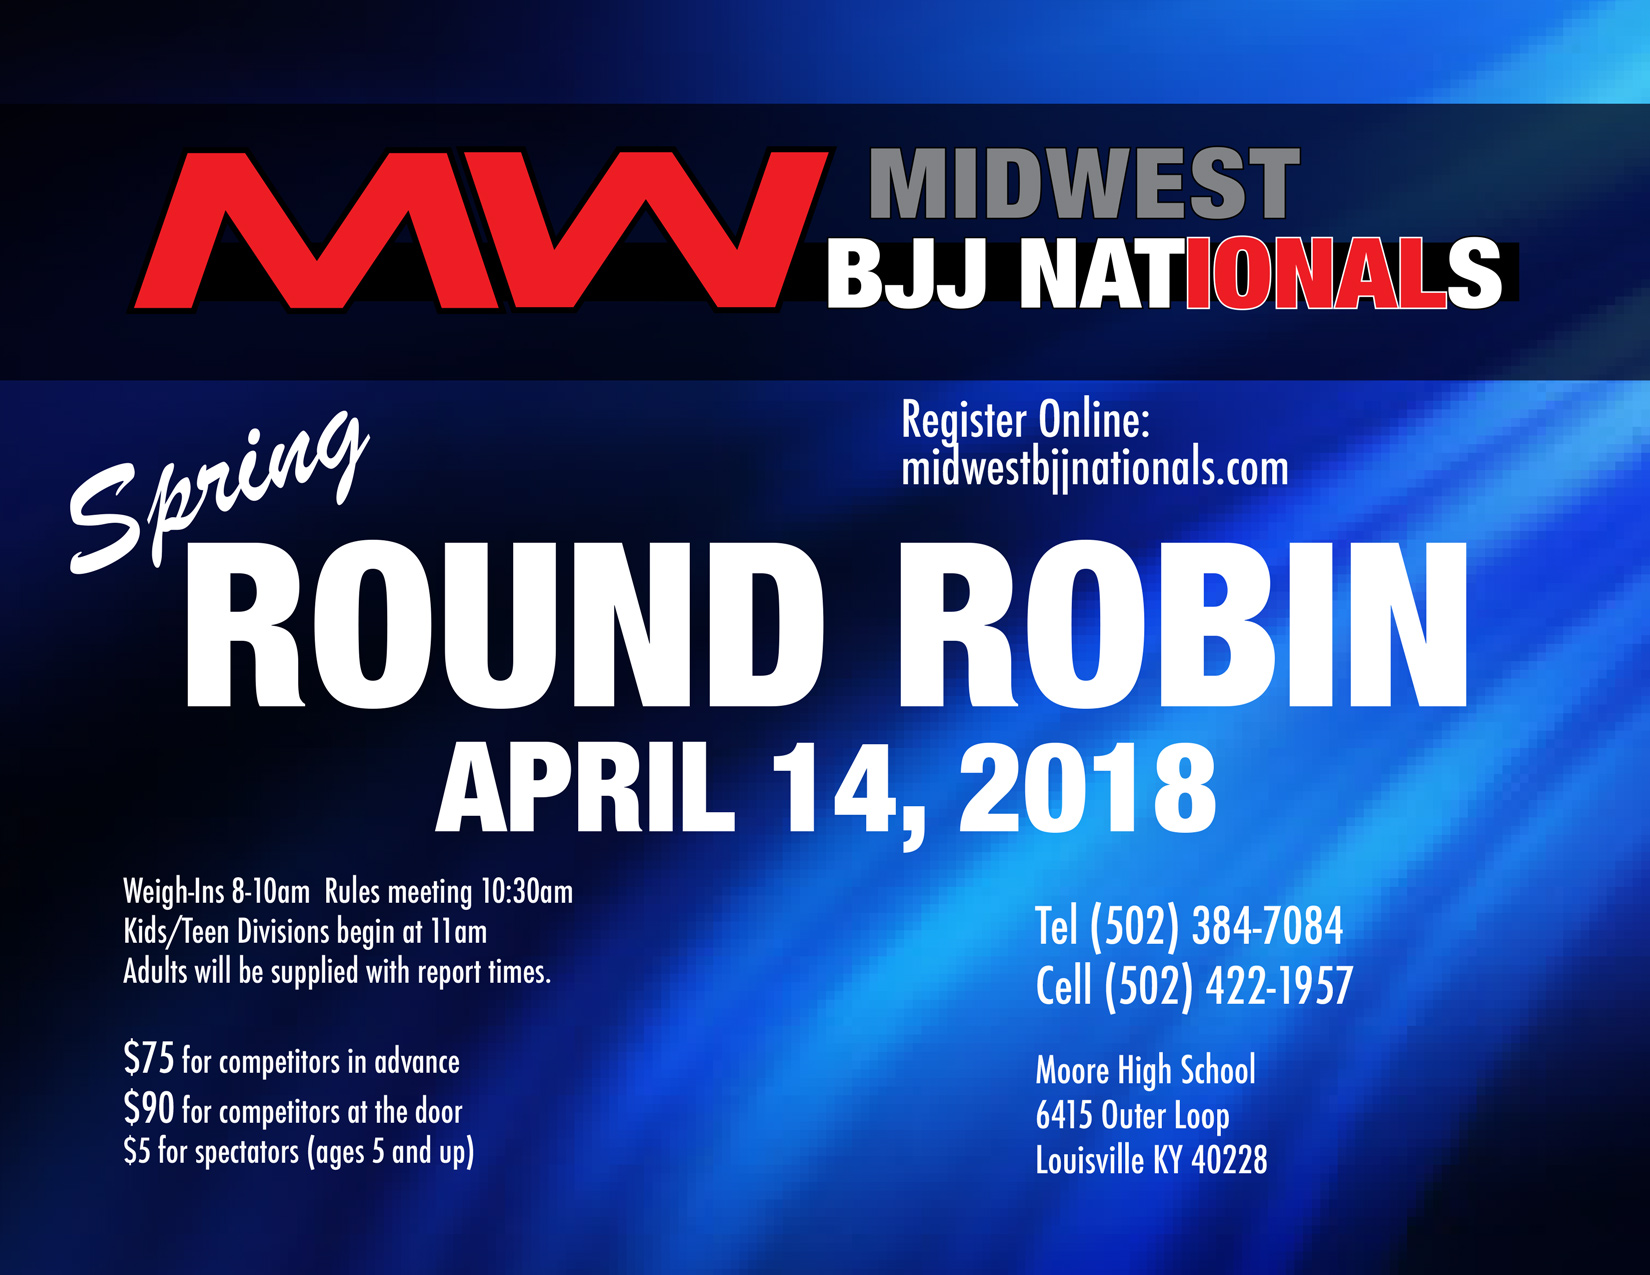 Home of Midwest BJJ Nationals